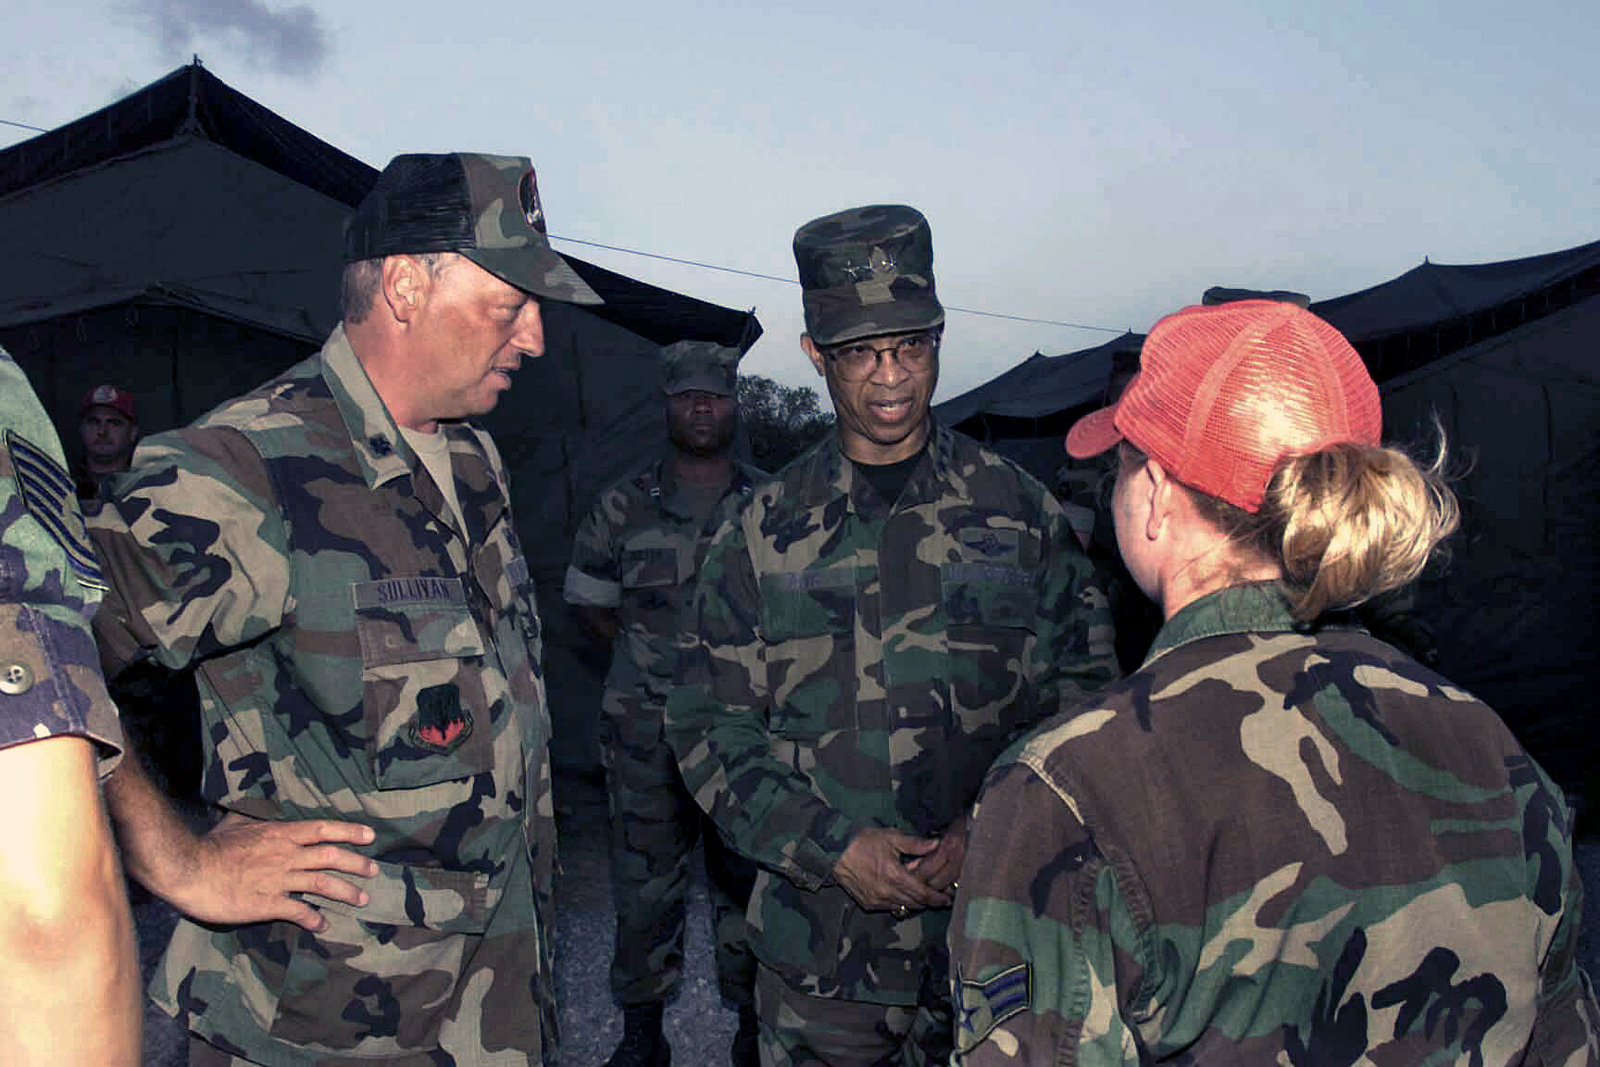 US Air Force (USAF) Lieutenant General (LGEN) Russell Davis (center) CHIEF, National Guard Bureau, is accompanied by USAF Lieutenant Colonel (LTC) Frank Sullivan (left), Company Commander (CC) Joint Task Force (JTF) Blue Mountain, as he speaks with USAF AIRMAN First Class (A1C) Amanda Rosato, Engineering Assistant, 200th Red Horse Flight (RHF), during his visit to Camp Dingo in Kingston, Jamaica, to visit with Joint Task Force (JTF) personnel during Exercise NEW HORIZONS 2002